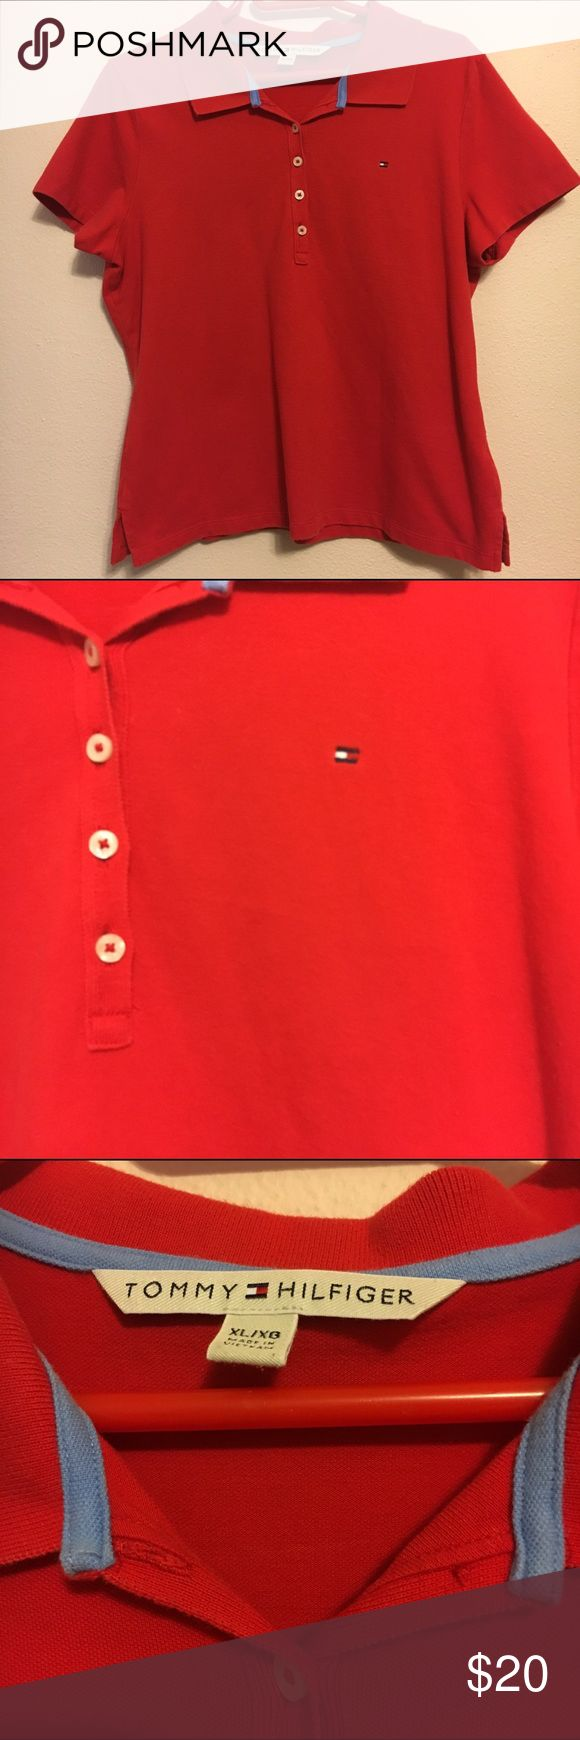 Tommy Hilfiger red woman's polo style shirt xl Tommy Hilfiger red polo style button up shirt. Tommy logo on chest. In good condition. 19 arm to arm and 22 shoulder to hem. Tommy Hilfiger Tops Tees - Short Sleeve